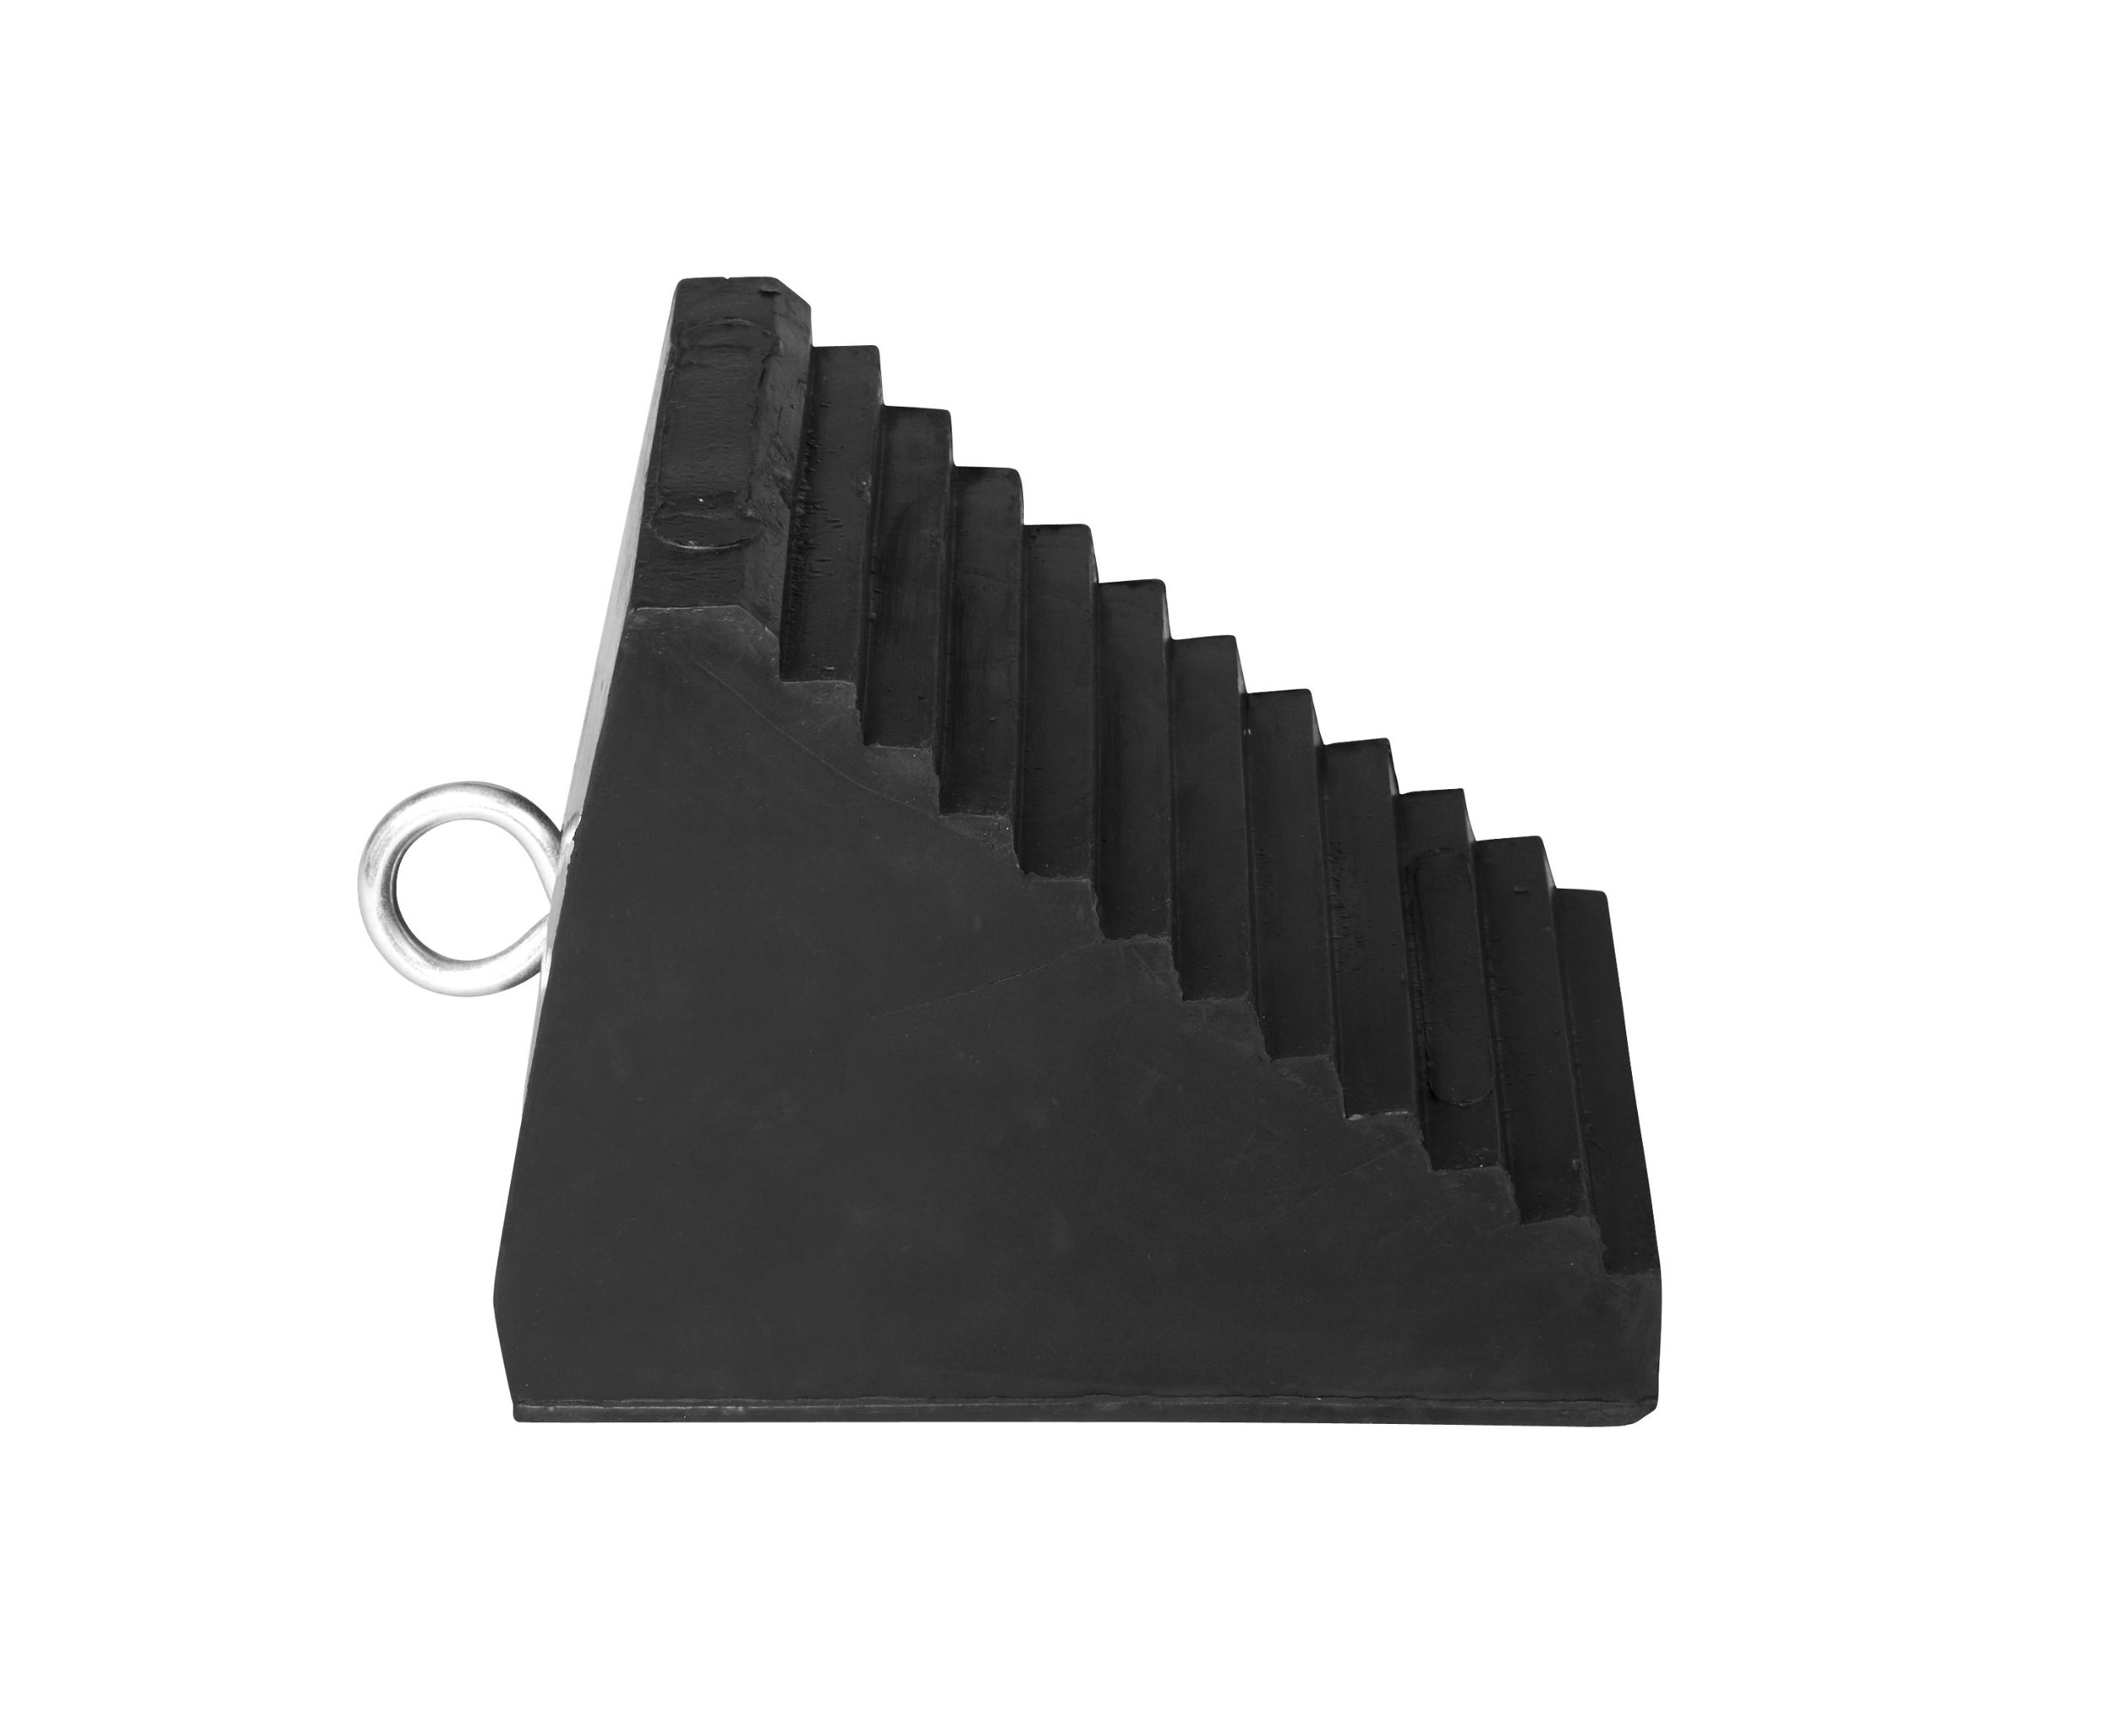 IRONguard 60-7258 MWC-32 Rubber Wheel Chock with Eye Hook, 8-1/2'' Height x 6-1/2'' Width x 9-1/2'' Length